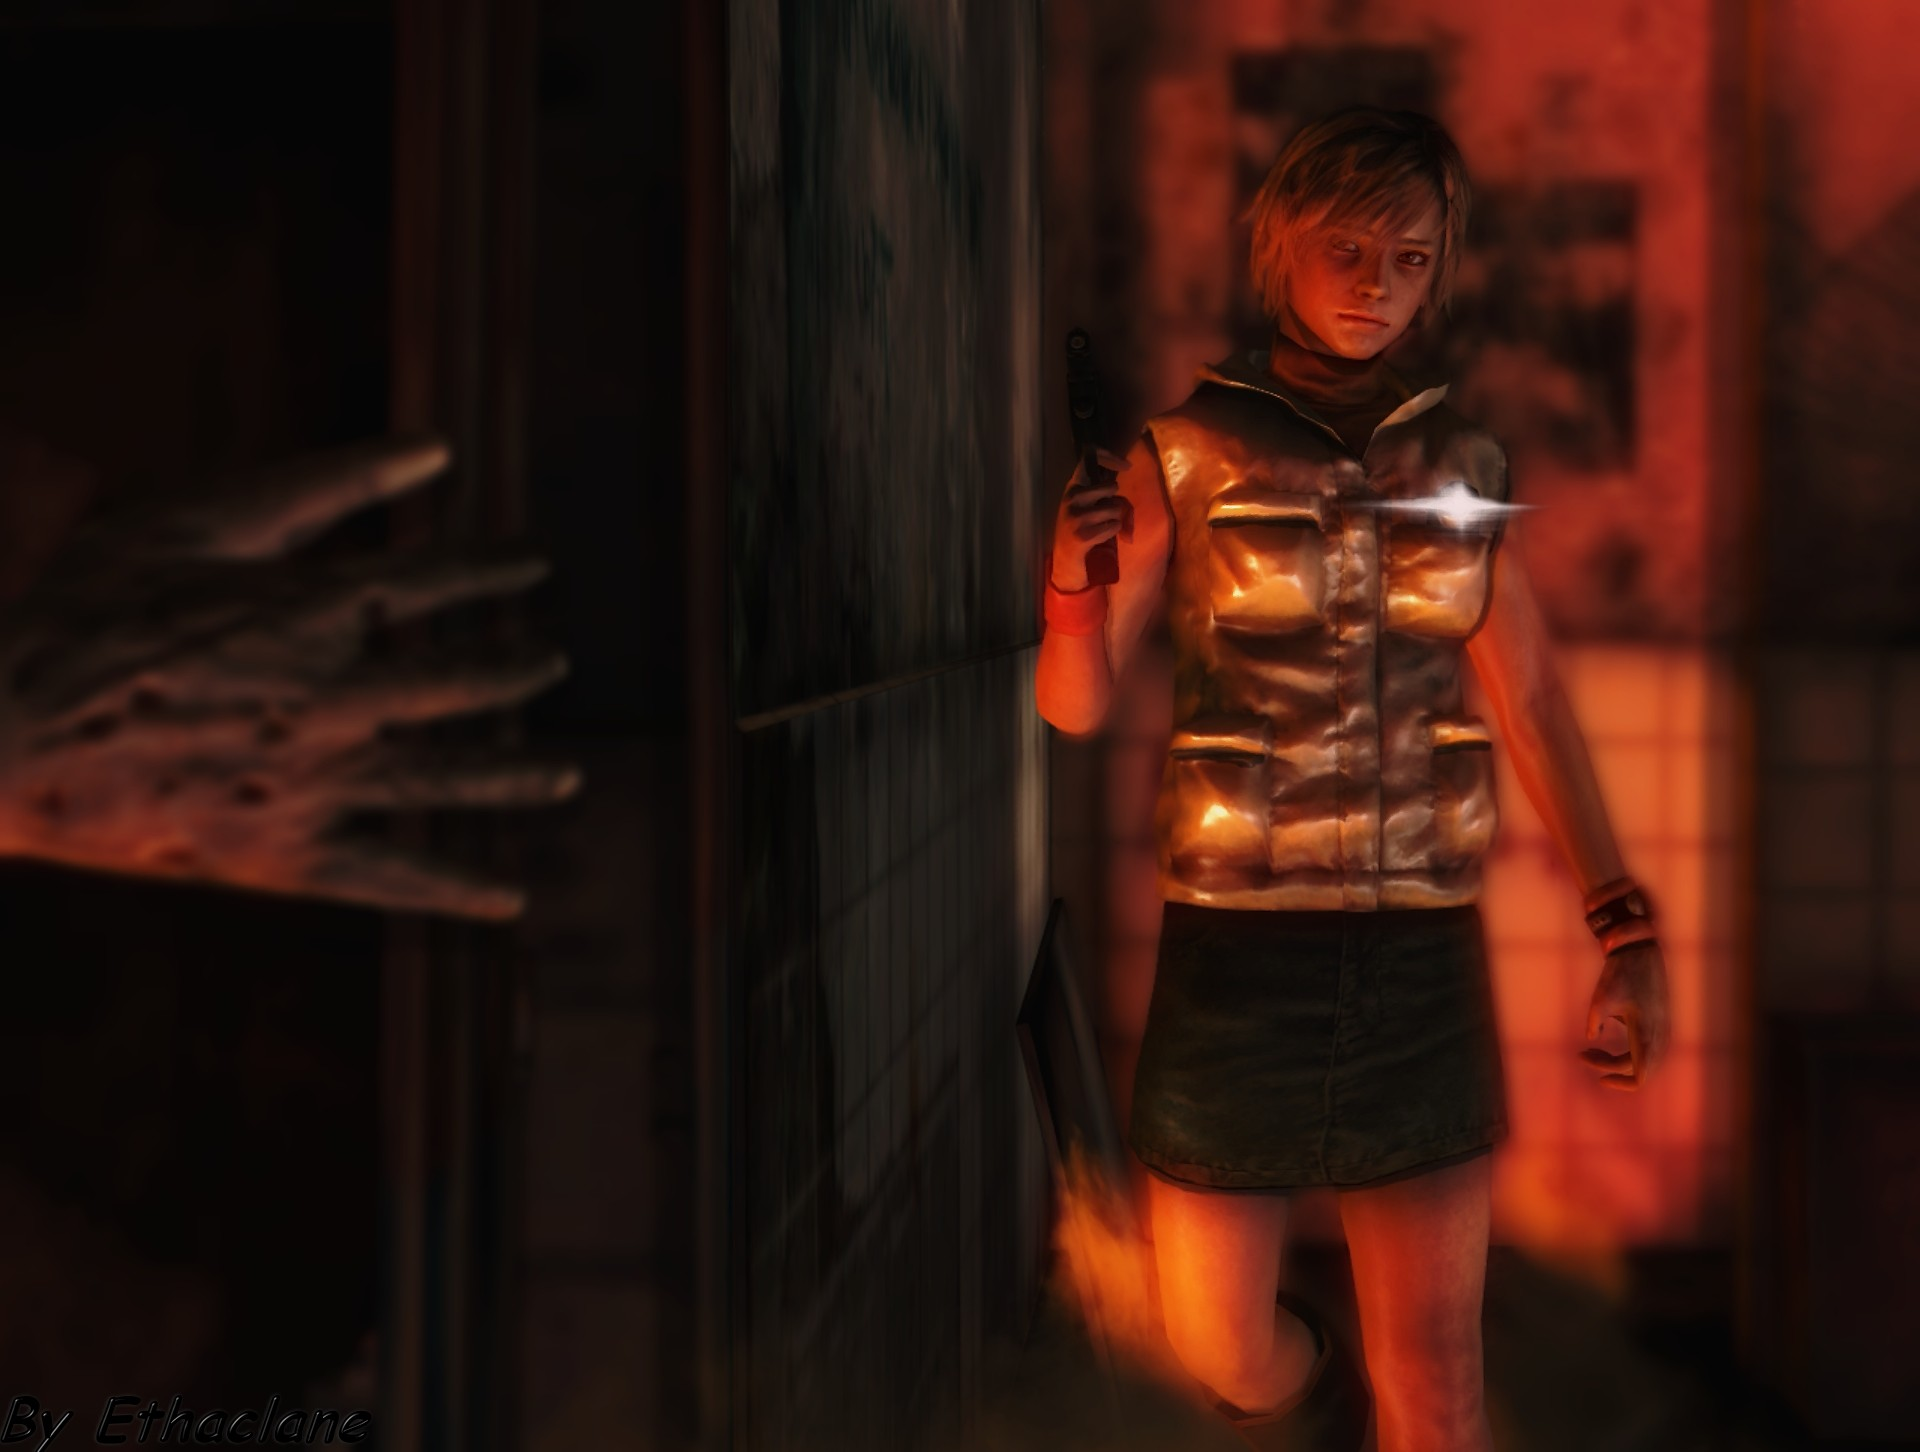 1920x1452 ... Silent hill wallpaper - Heather by ethaclane